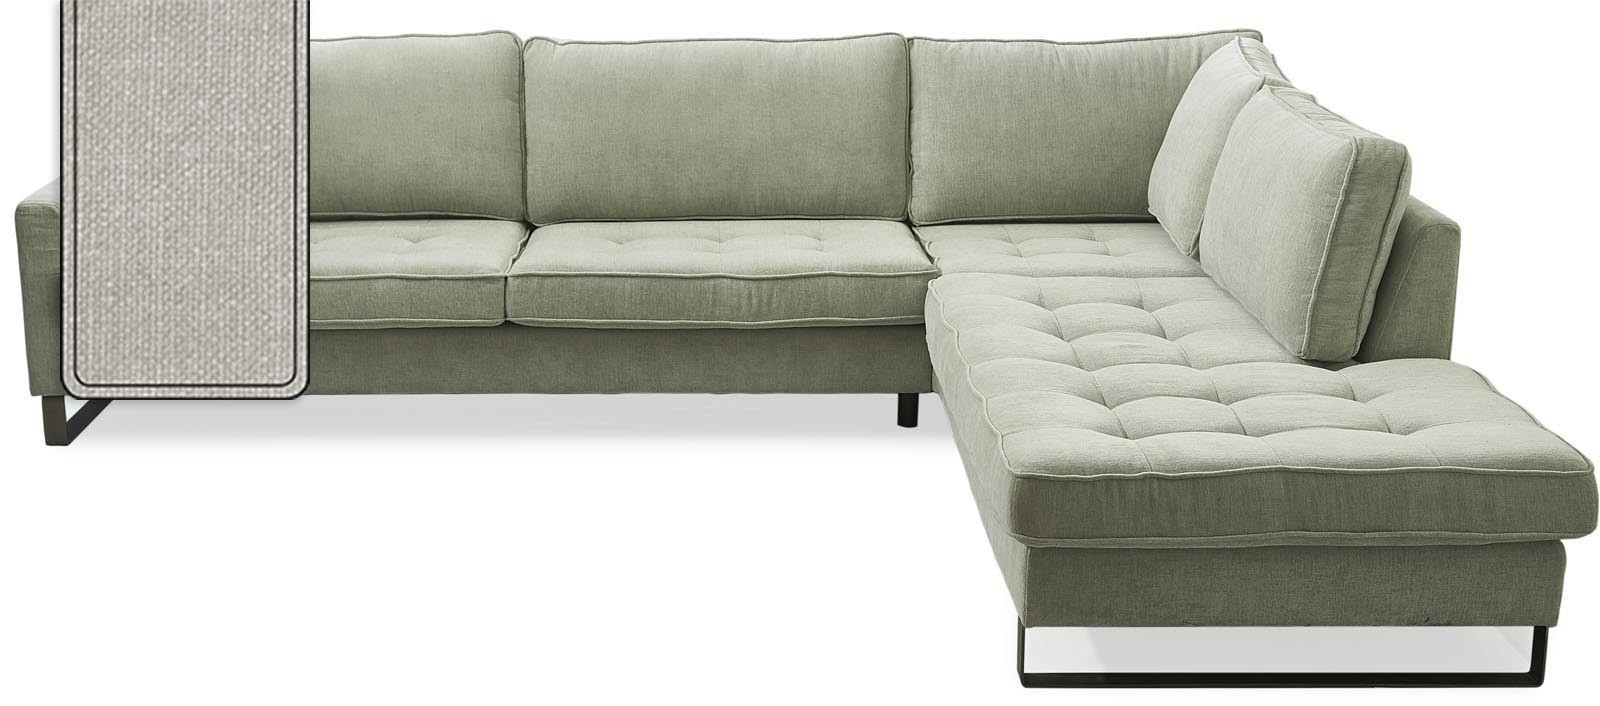 West Houston Corner Sofa Chaise Longue Right Cotton Ash Grey / Rivièra Maison